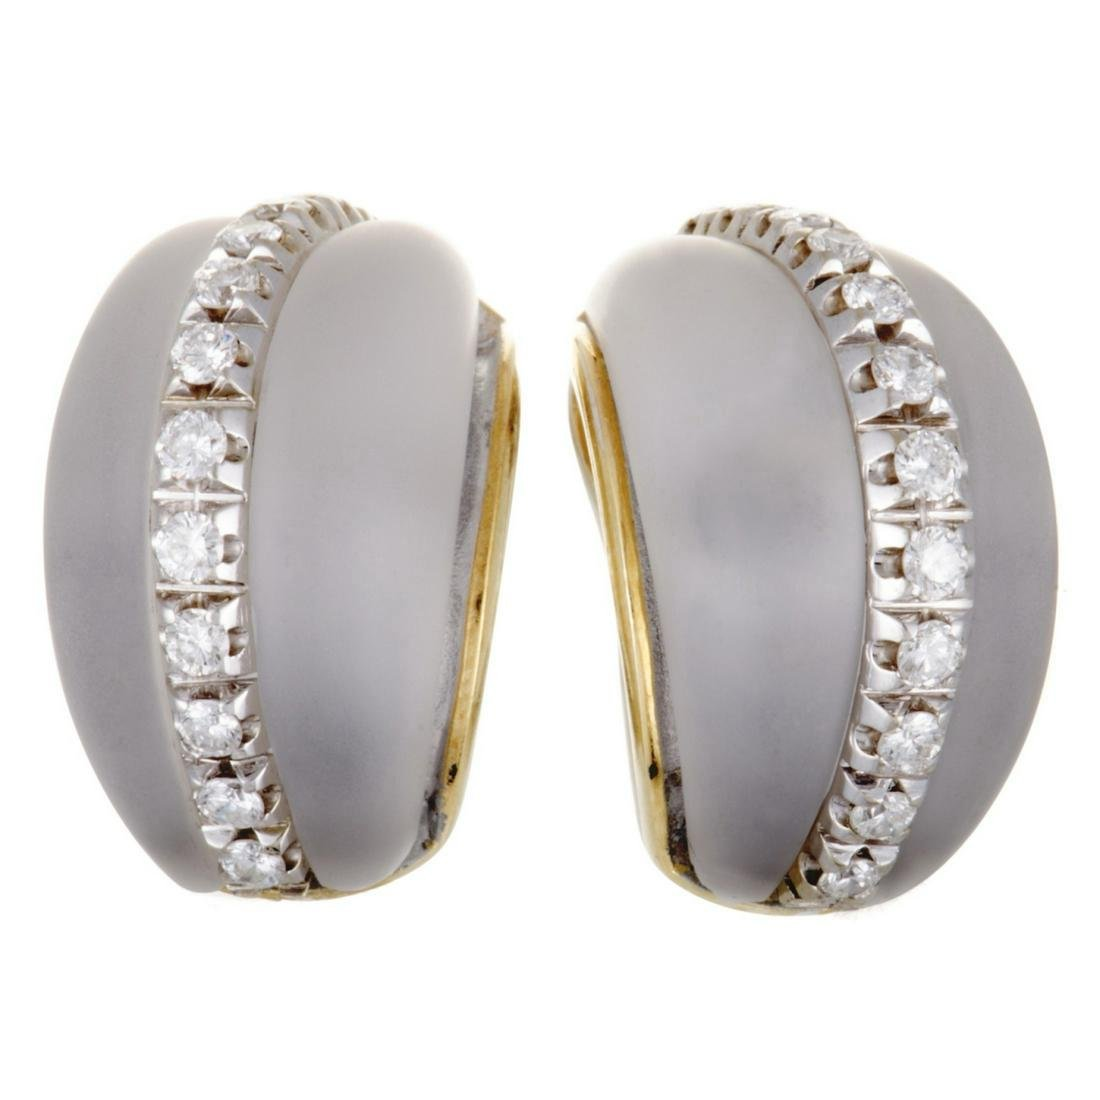 Fred Paris 1.00ctw Diamond, Crystal & 18K Ear Clips